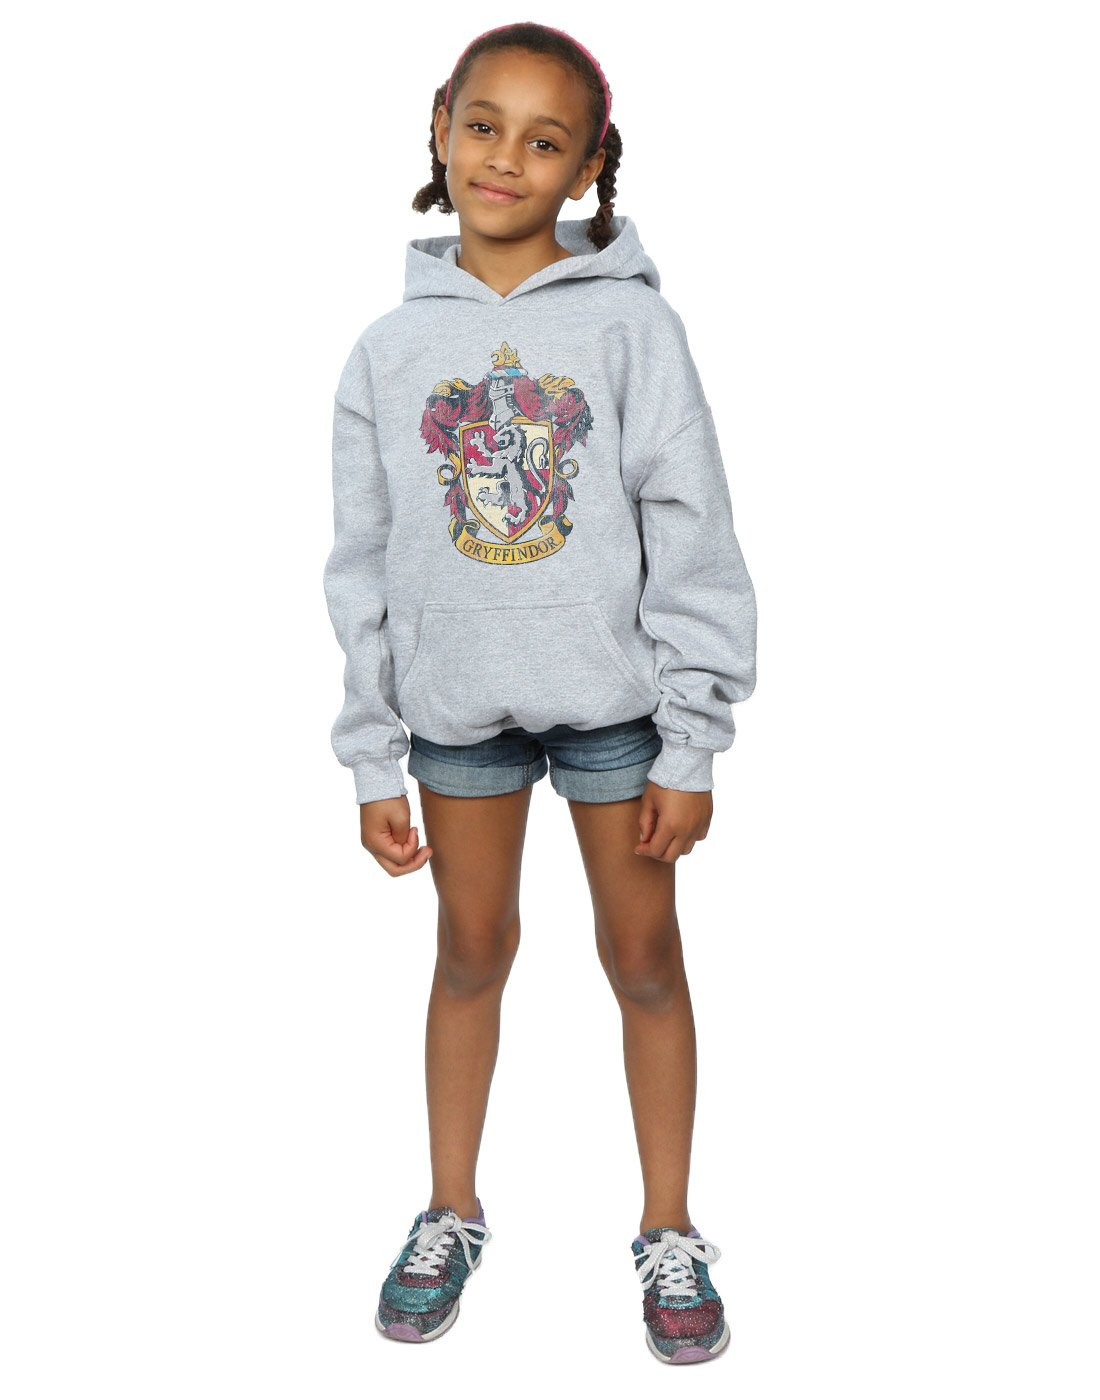 HARRY POTTER Girls Gryffindor Distressed Crest Hoodie 9-11 Years Sport Grey by HARRY POTTER (Image #5)